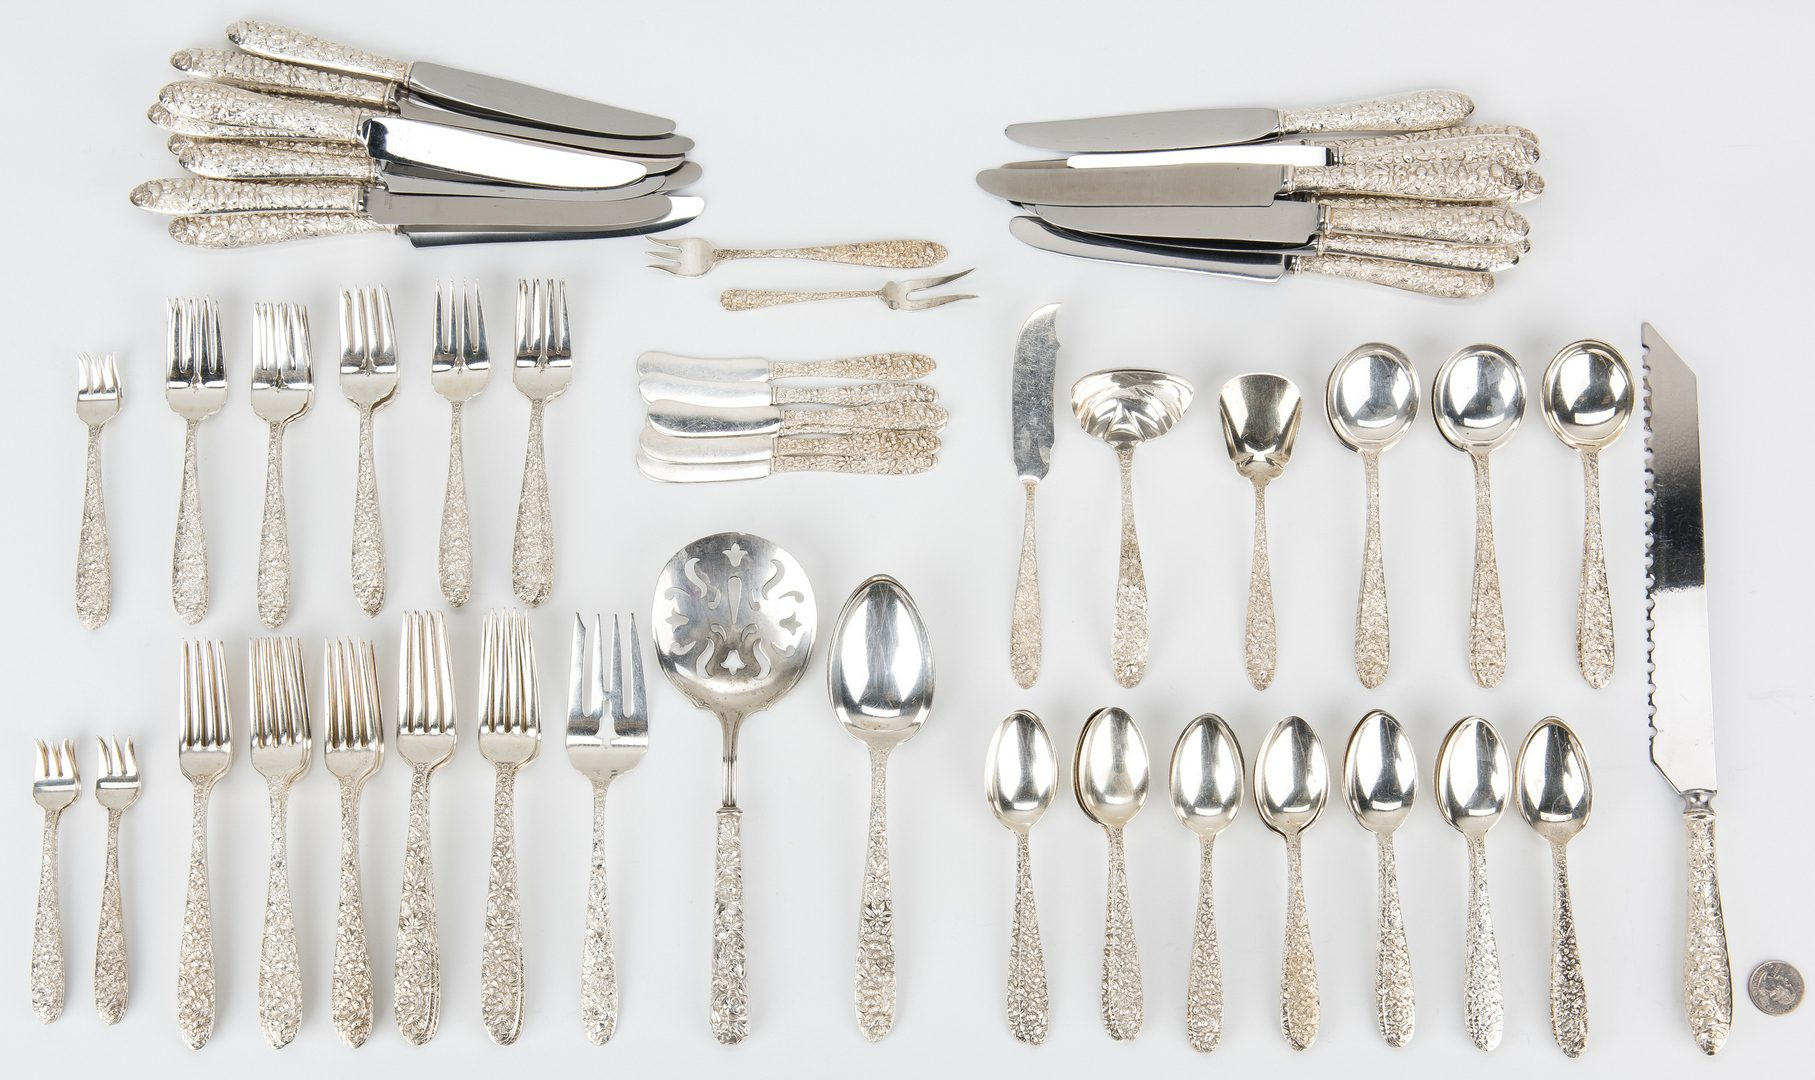 Lot 193: 121 pcs. Manchester Southern Rose Pattern Sterling Silver Flatware